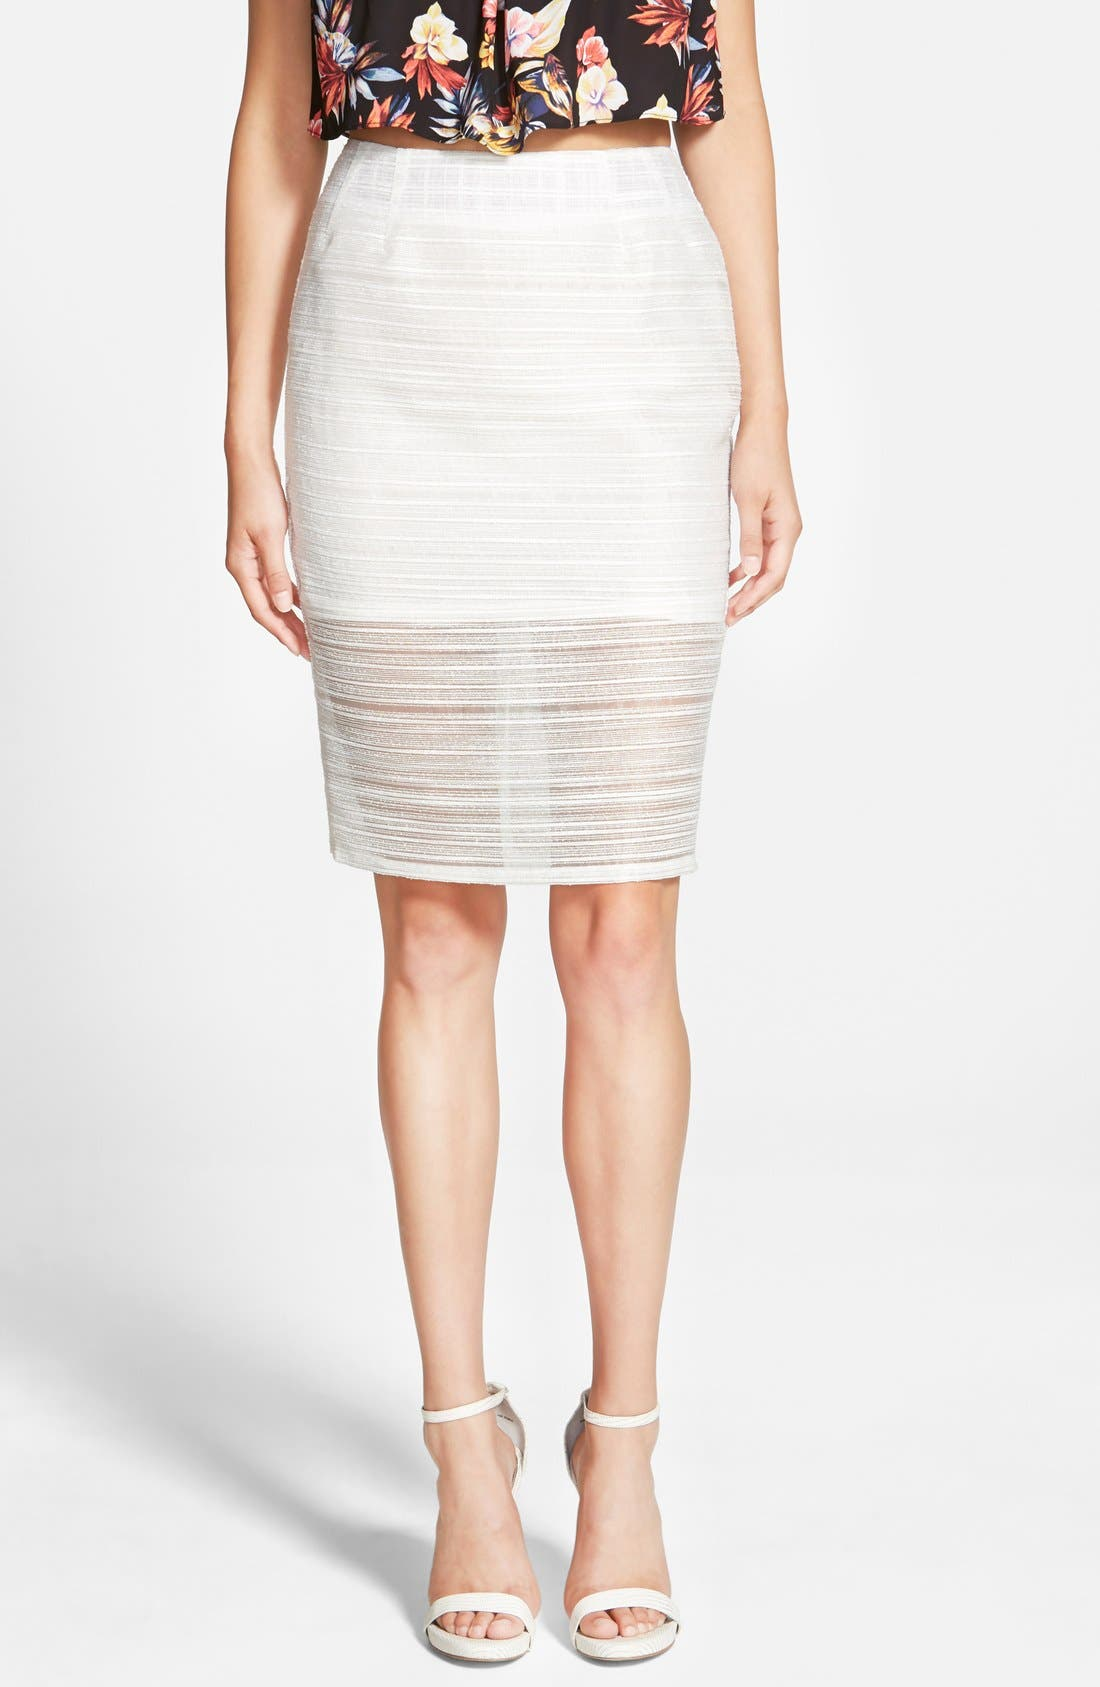 Alternate Image 1 Selected - Whitney Eve 'Mosquito Bay' Pencil Skirt